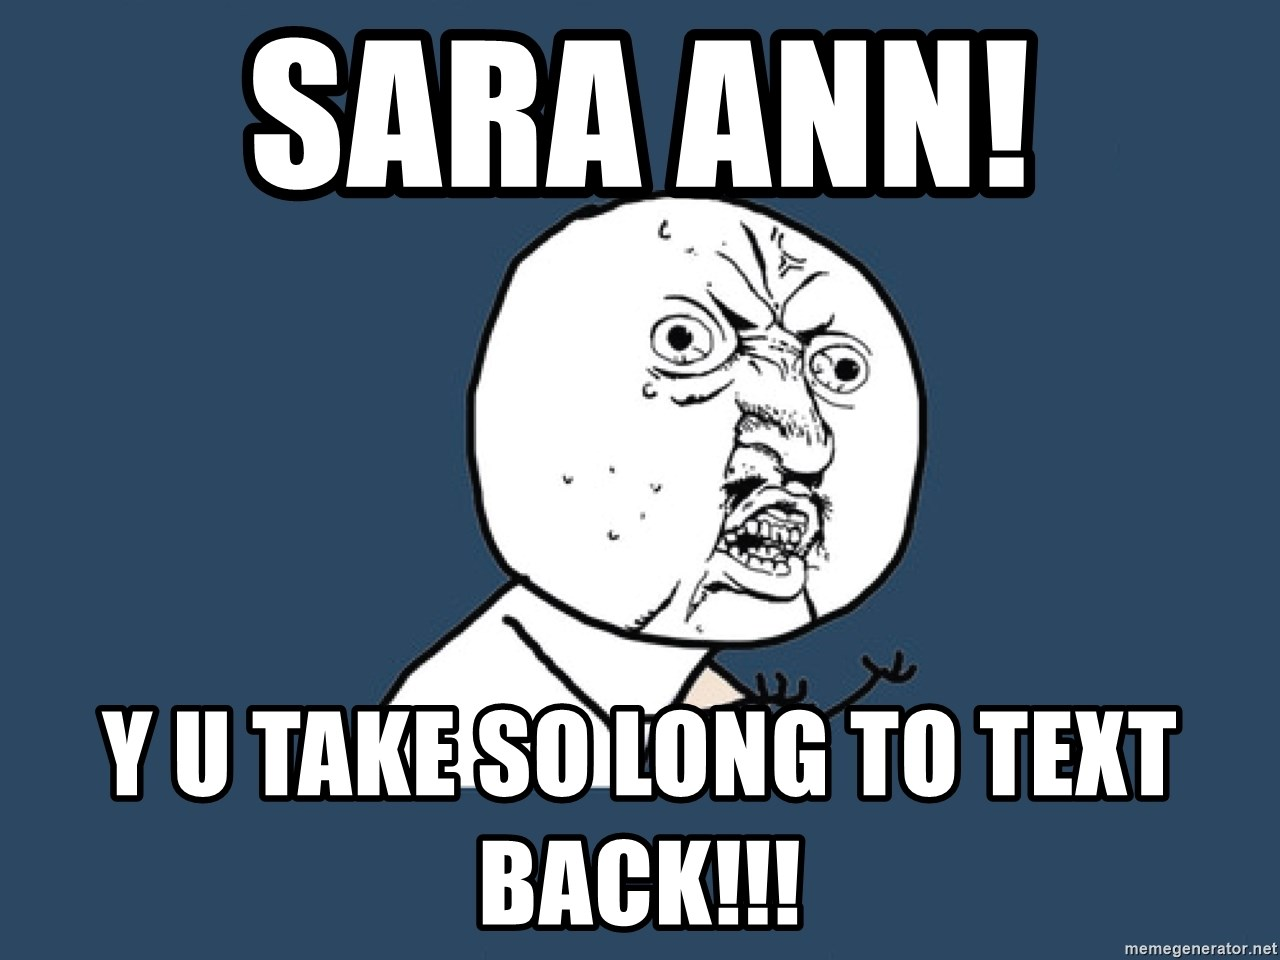 Y U No - Sara Ann!  Y u take so long to text back!!!